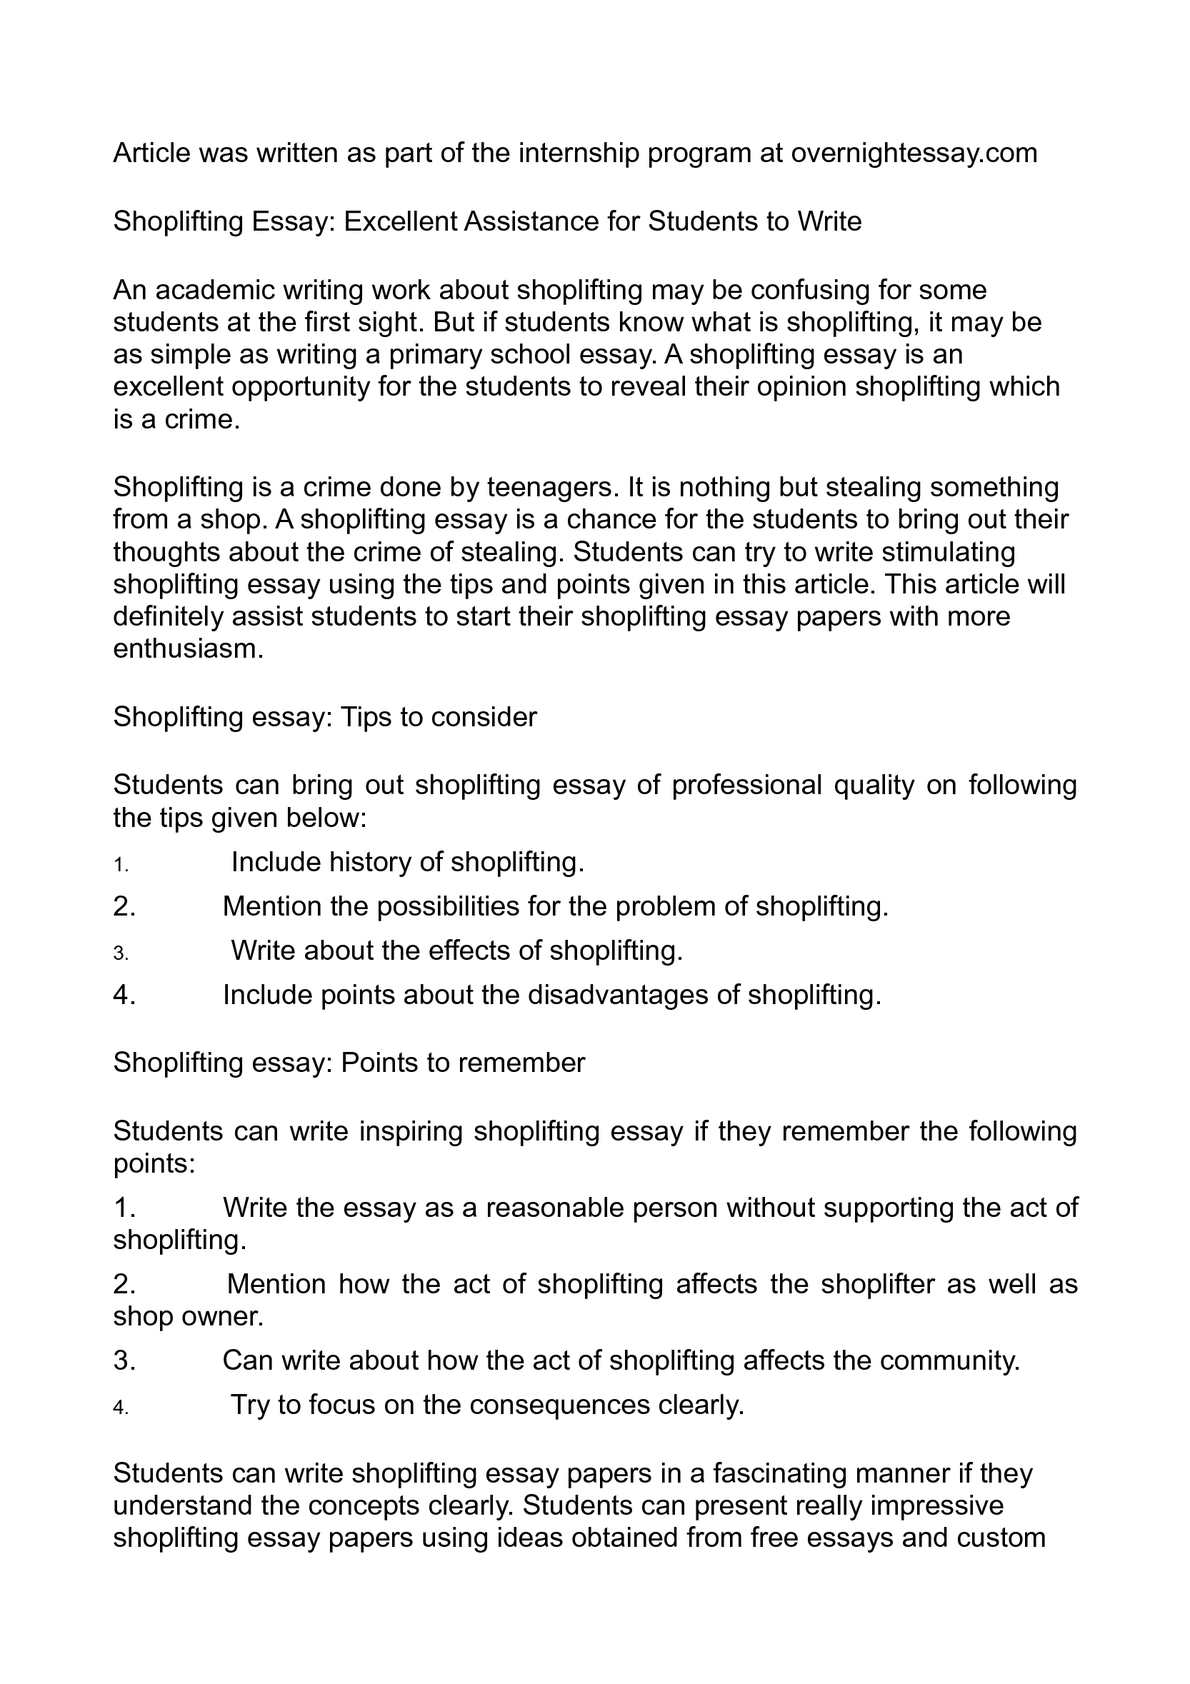 shoplifting essay essay of science introductory essay scientific  calam atilde copy o shoplifting essay excellent assistance for students to calamatildecopyo shoplifting essay excellent assistance